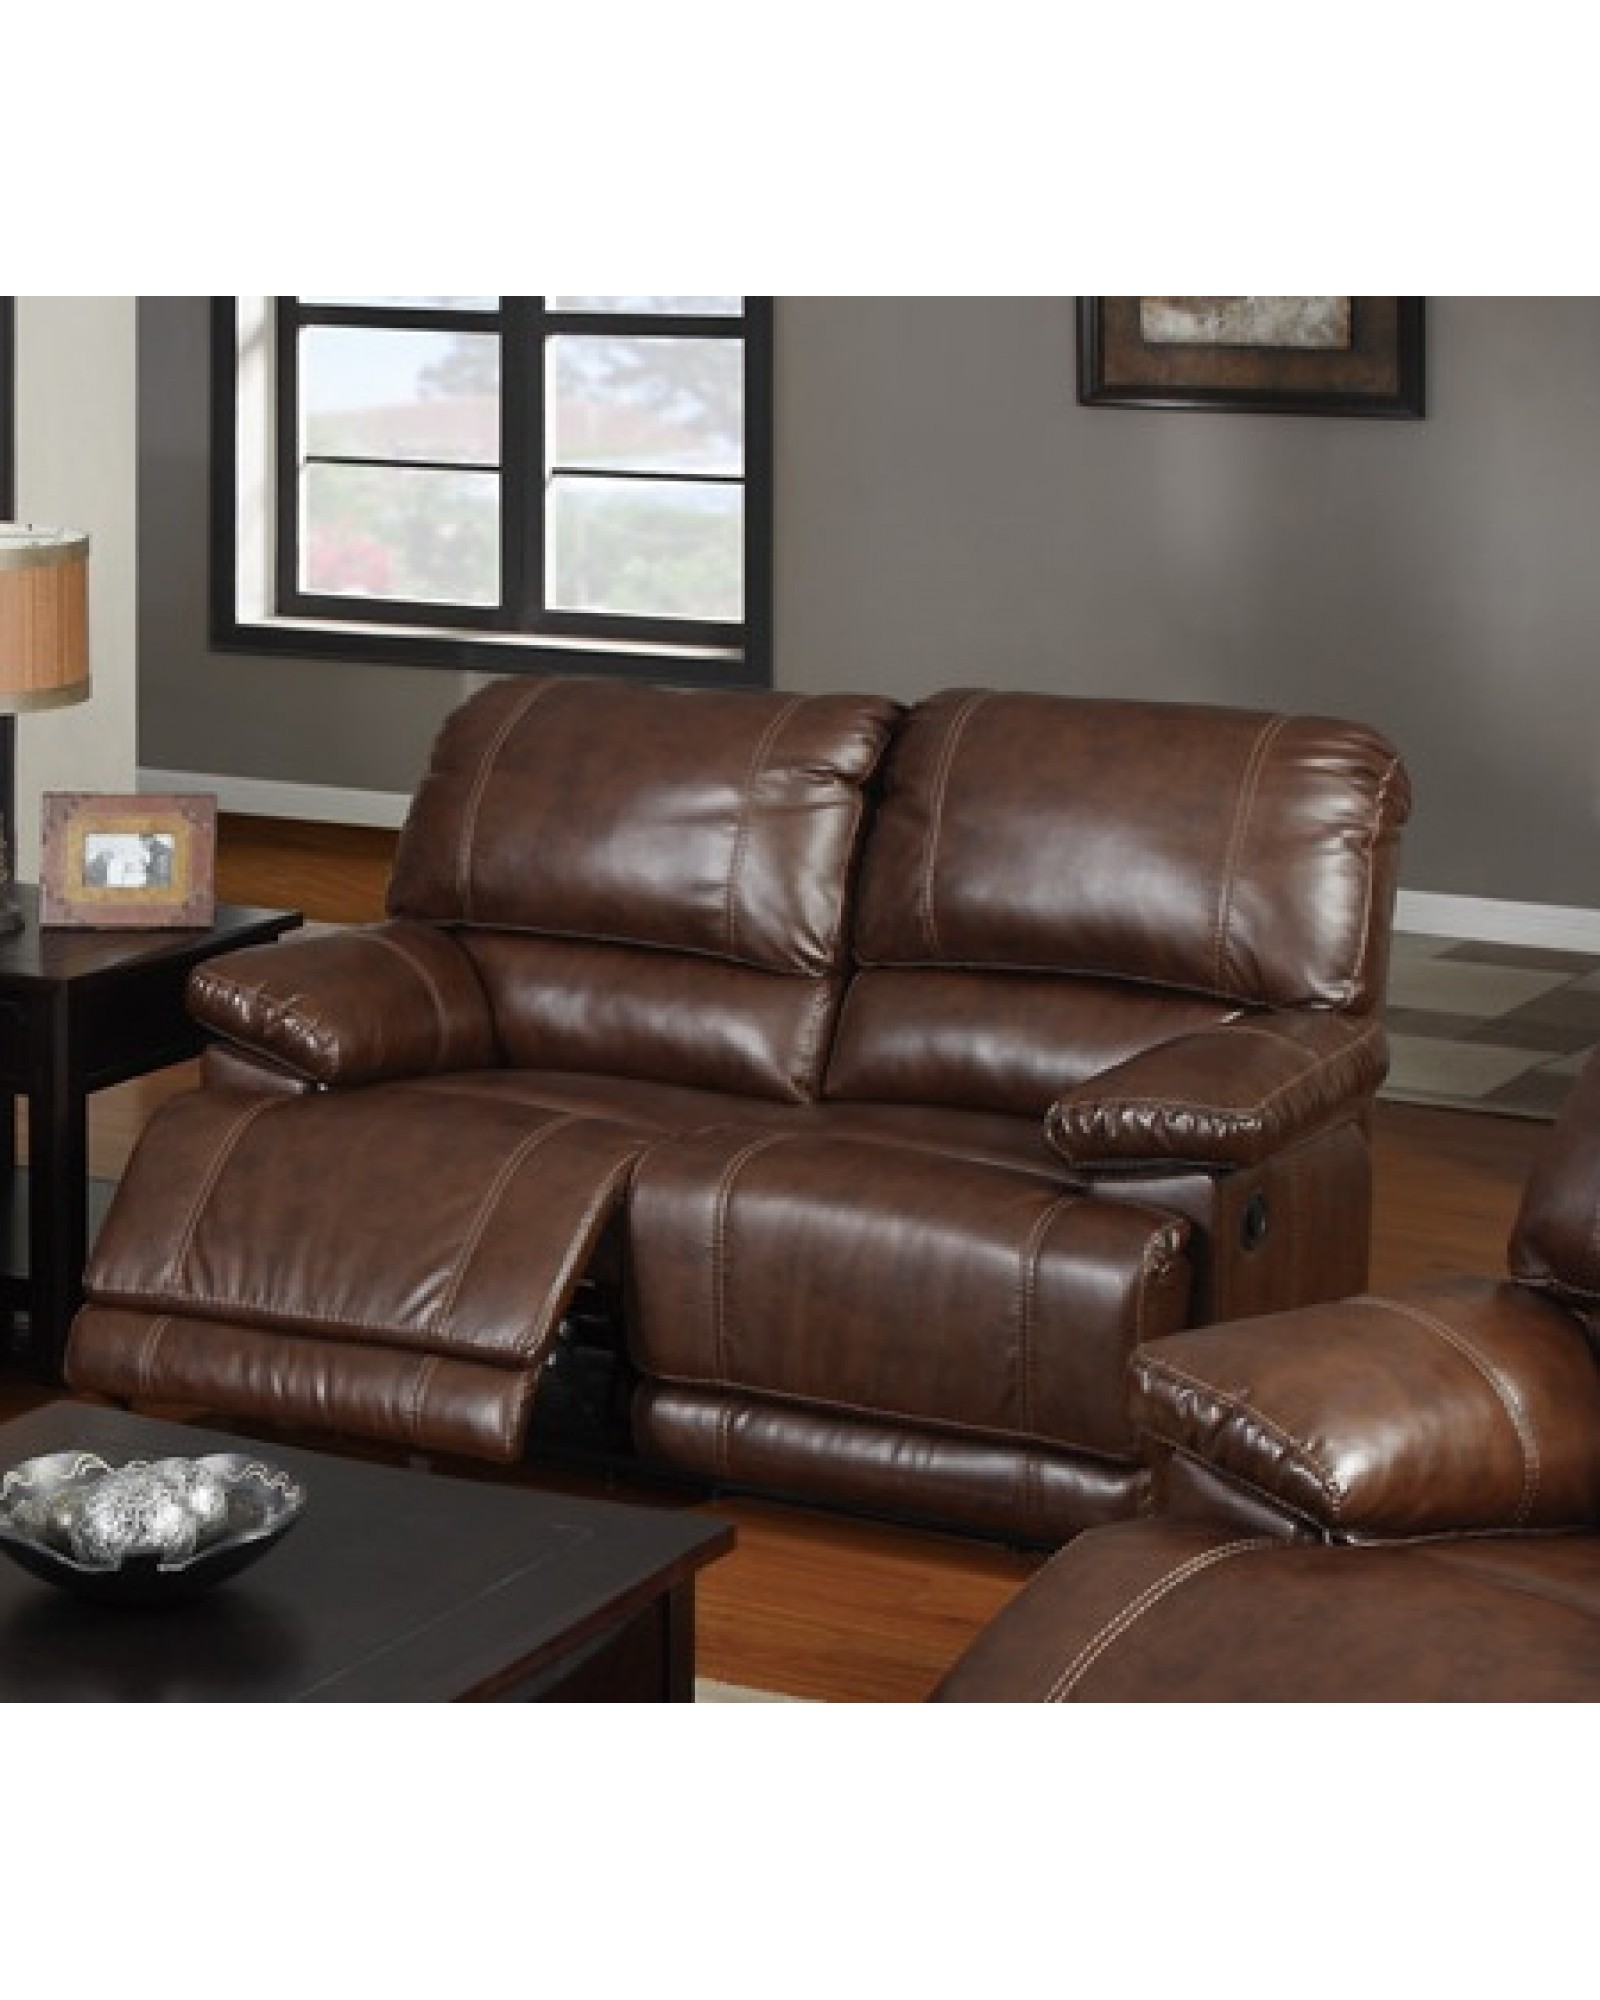 Bonded Leather Motion Sofa, Loveseat and Recliner, Mahogany